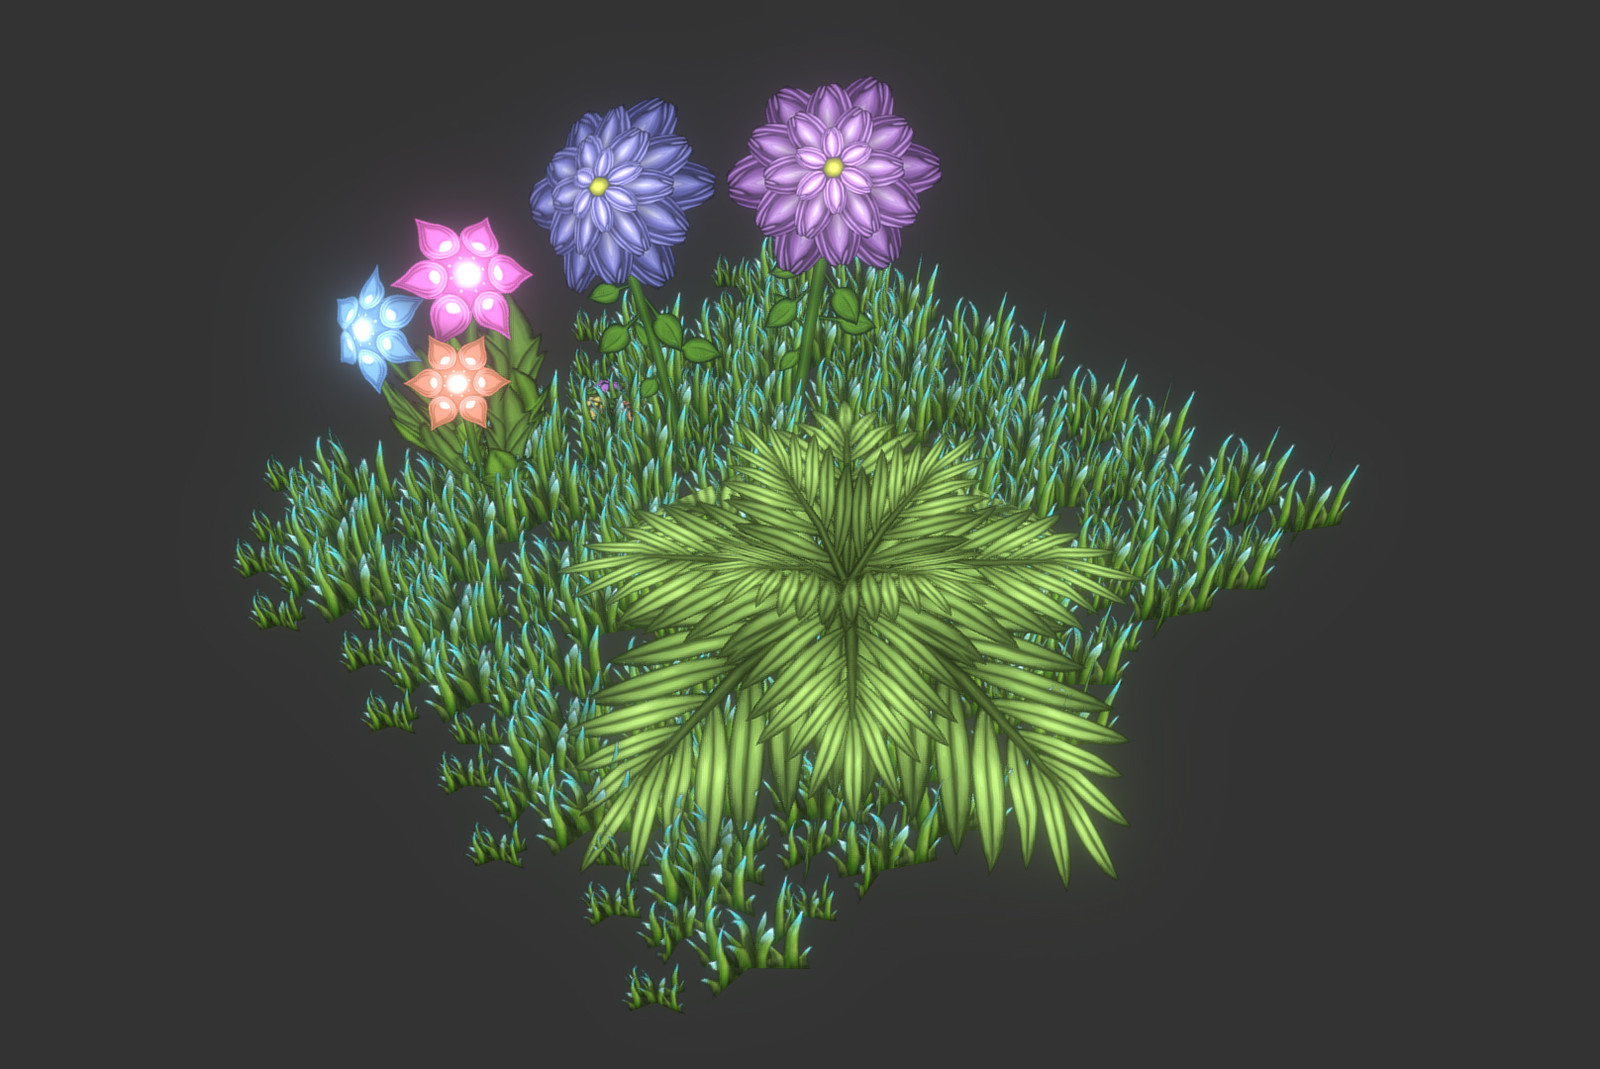 Here is a shot of the fist foliage I made for the environment. I use a blank green canvas in photoshop and paint leaves and such on it and later place it on bended planes in maya with the use of Opacity.